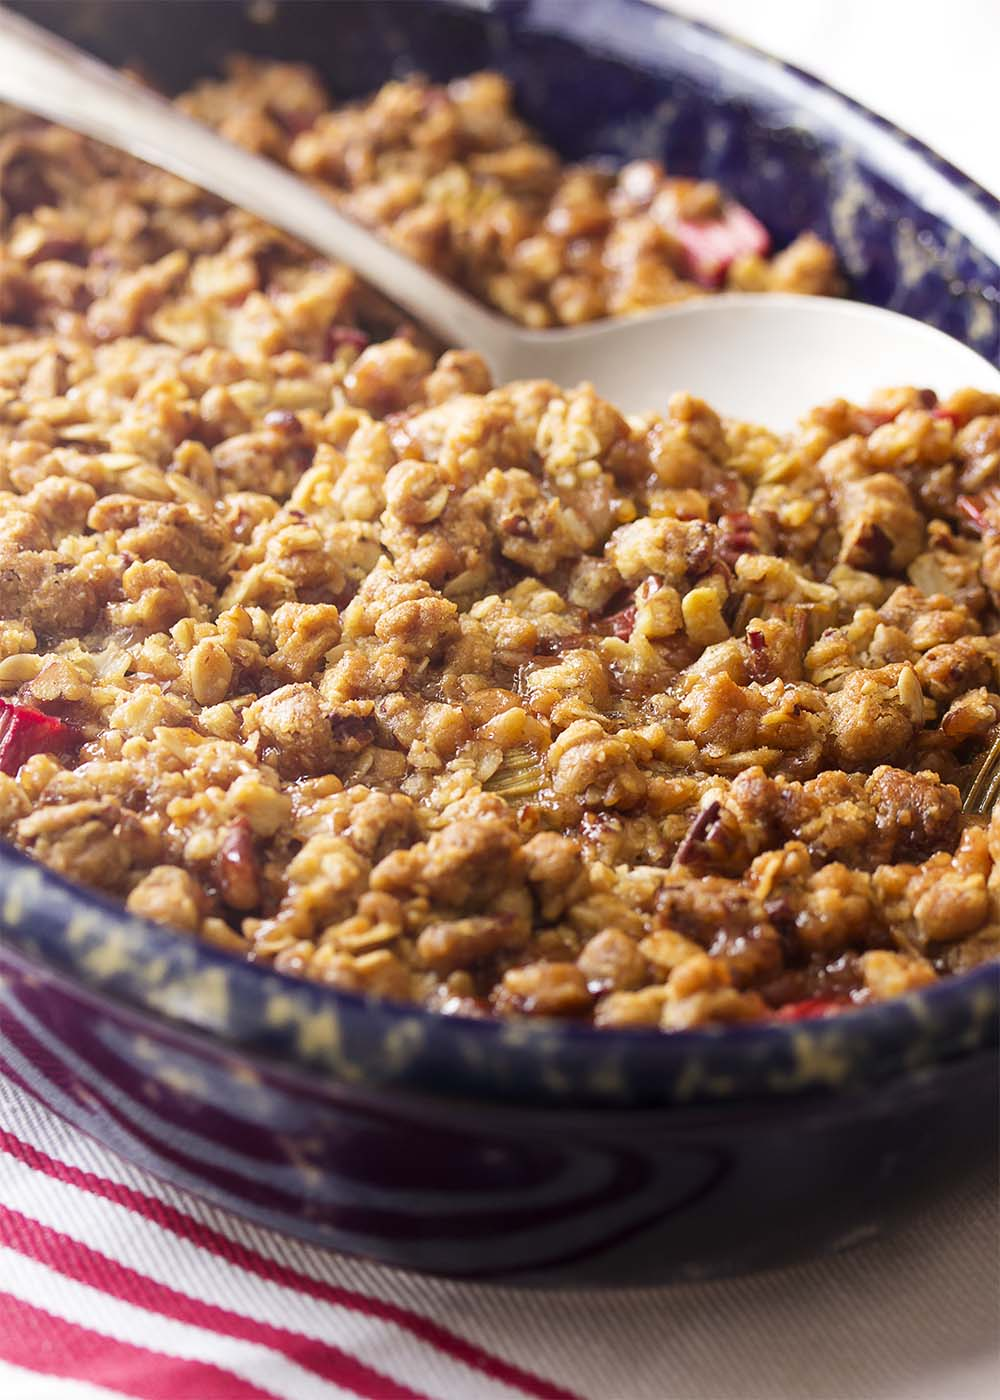 An oval gratin dish of spiced rhubarb crisp with a golden brown oatmeal pecan crumble topping.